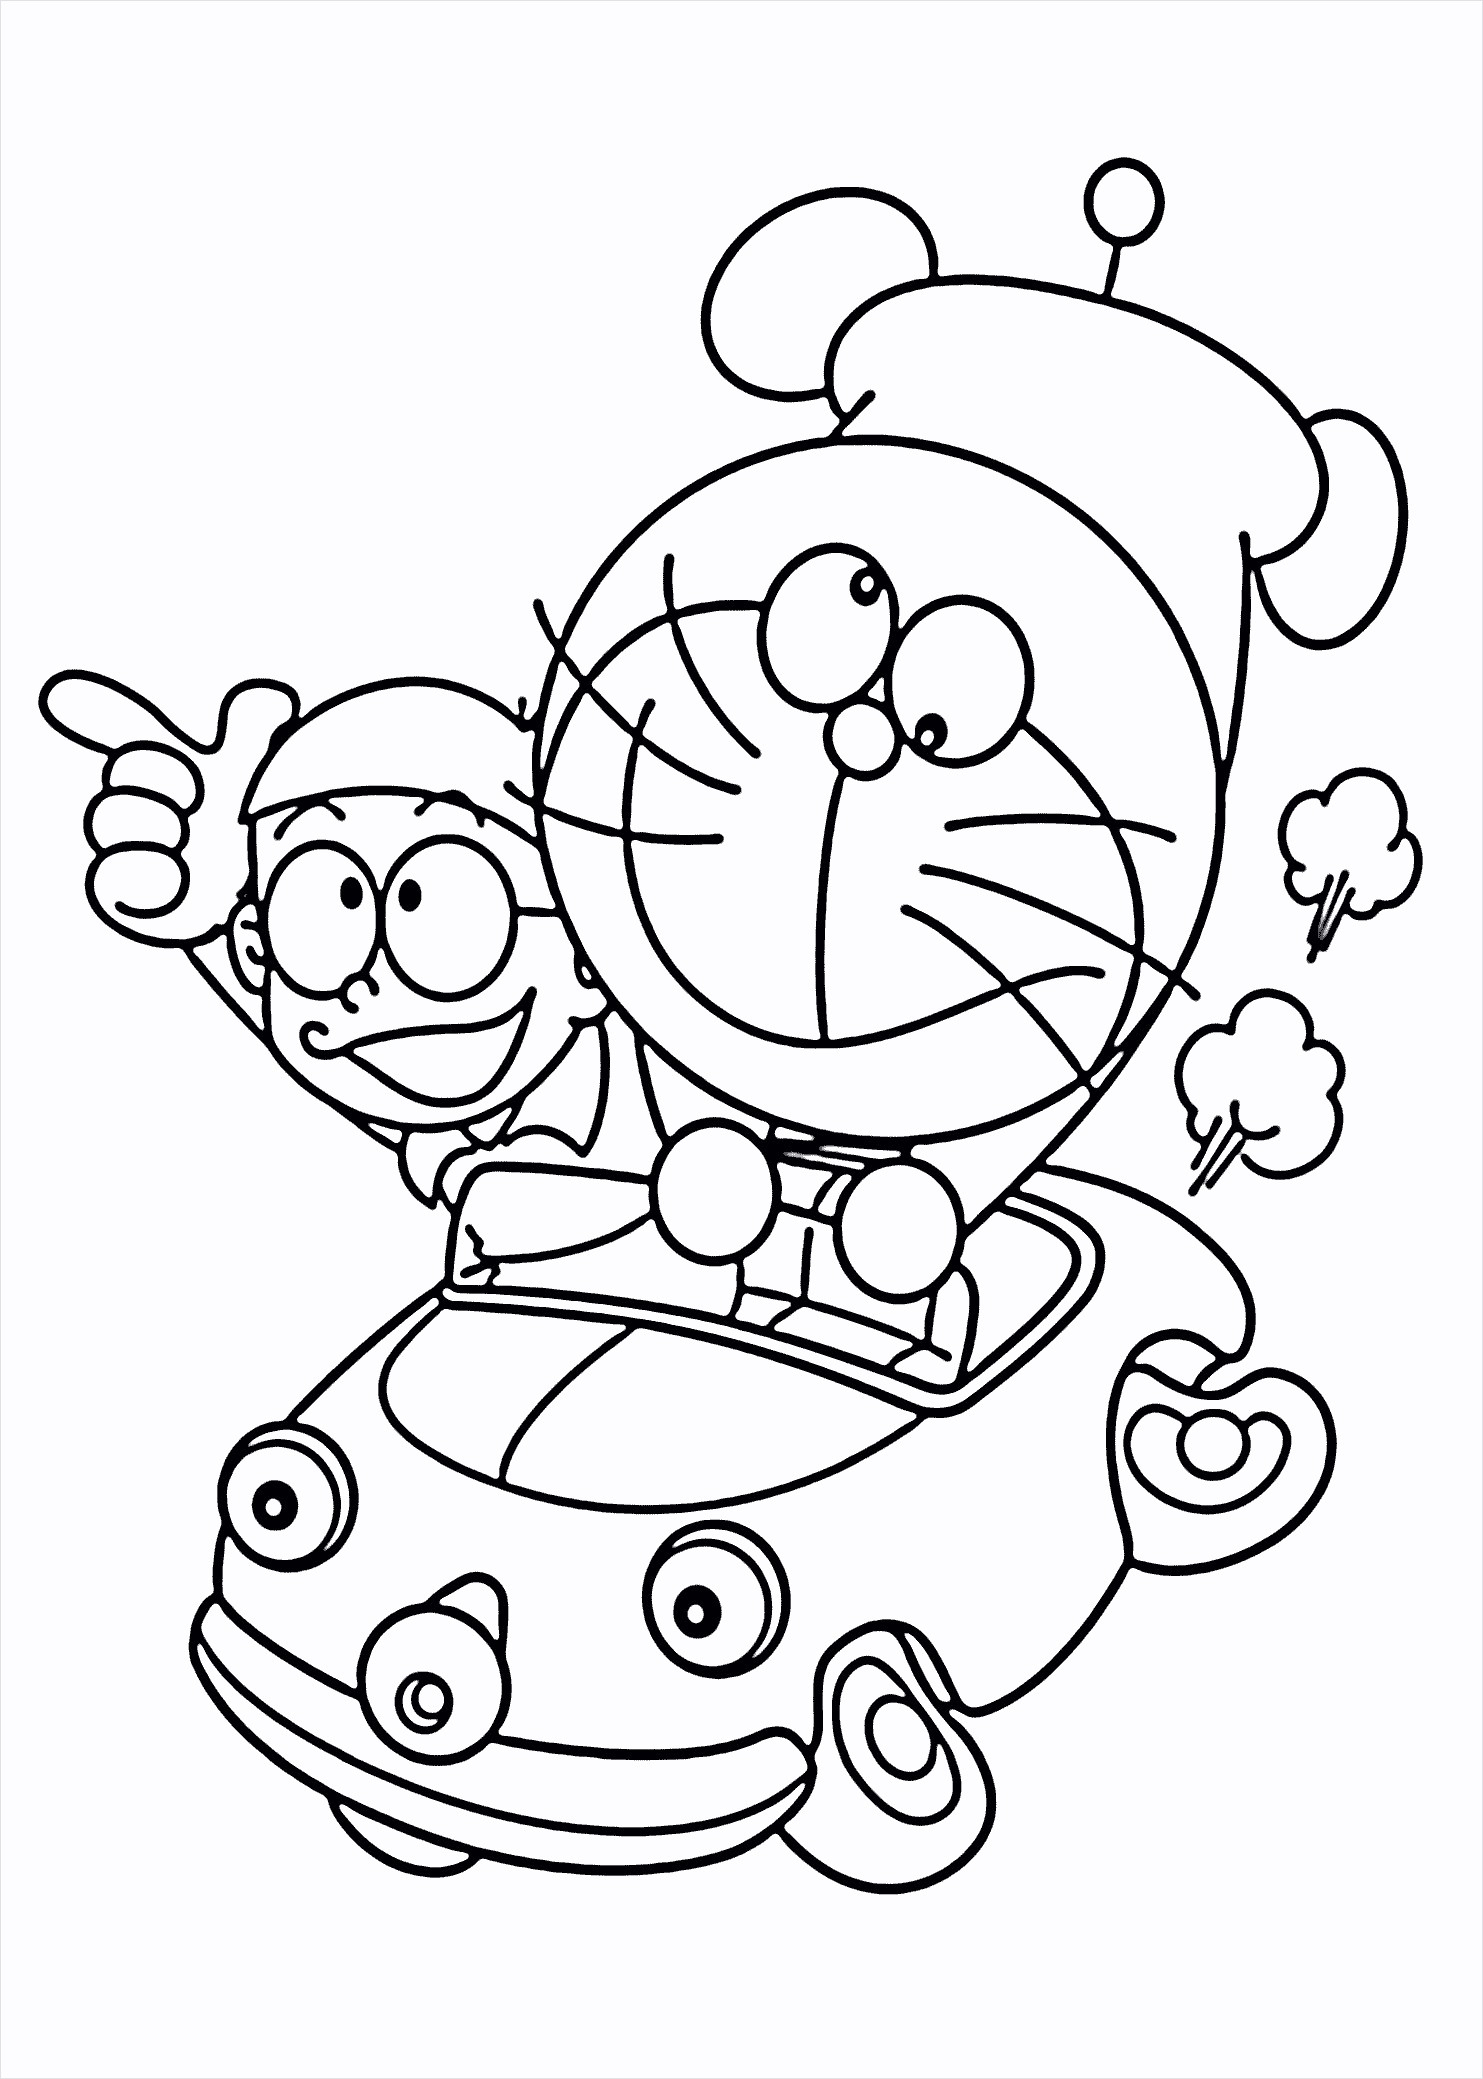 African American Coloring Pages For Kids - Coloring Home | 2079x1483